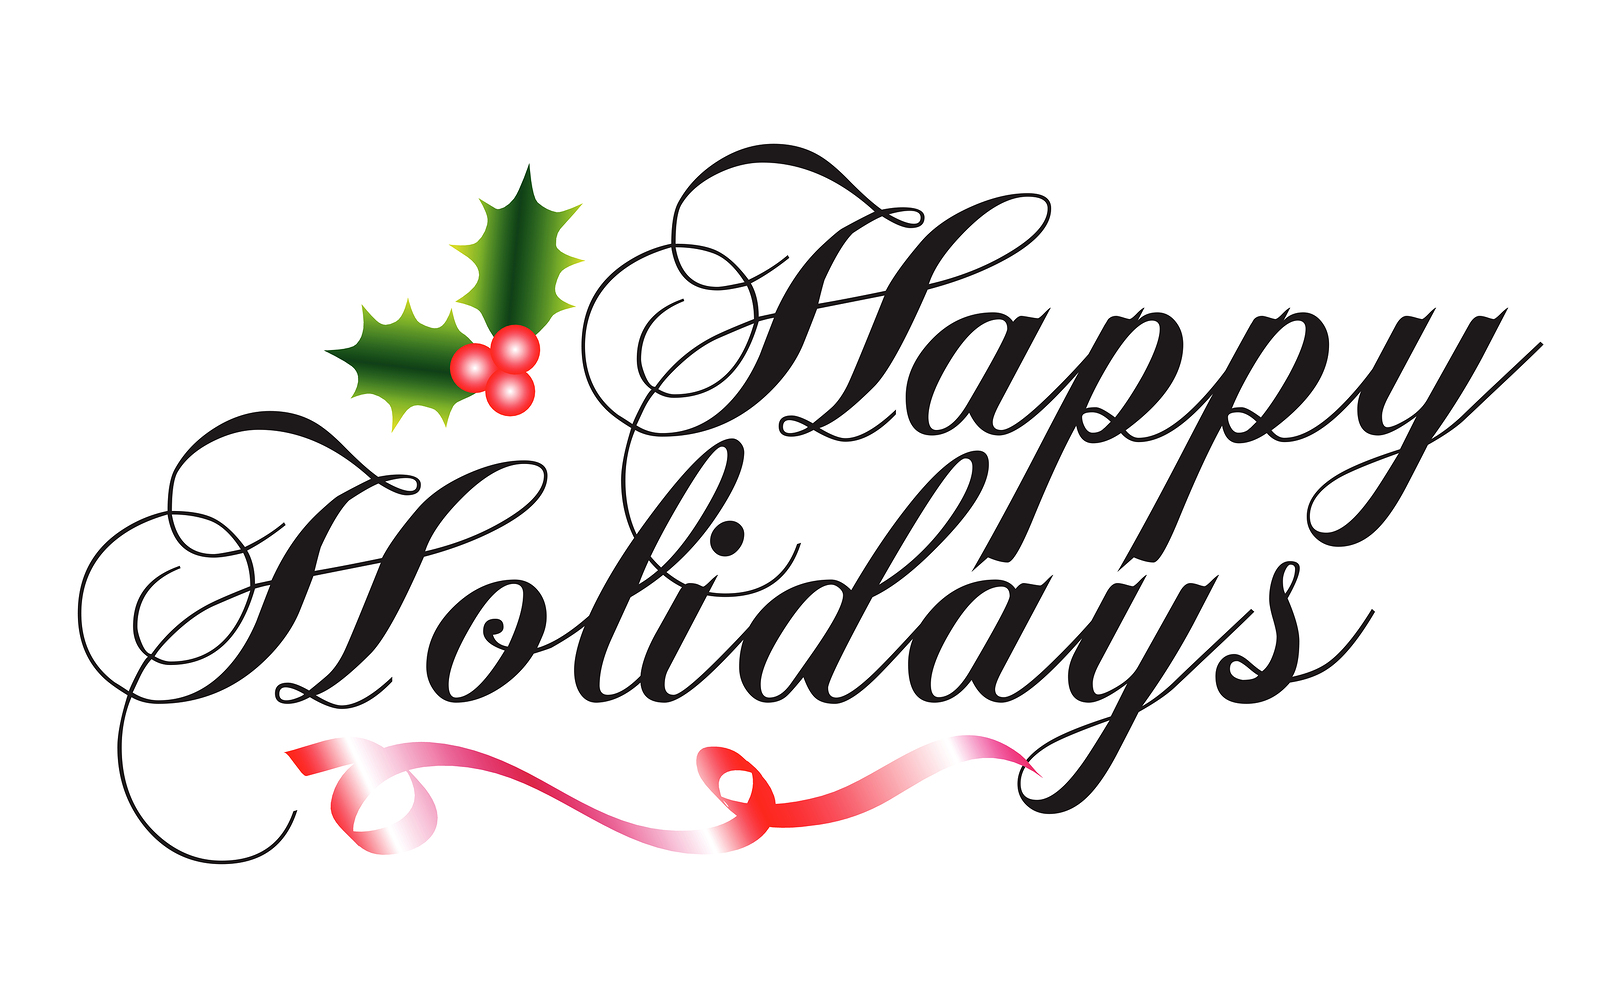 Free Happy Holidays Clipart The Cliparts